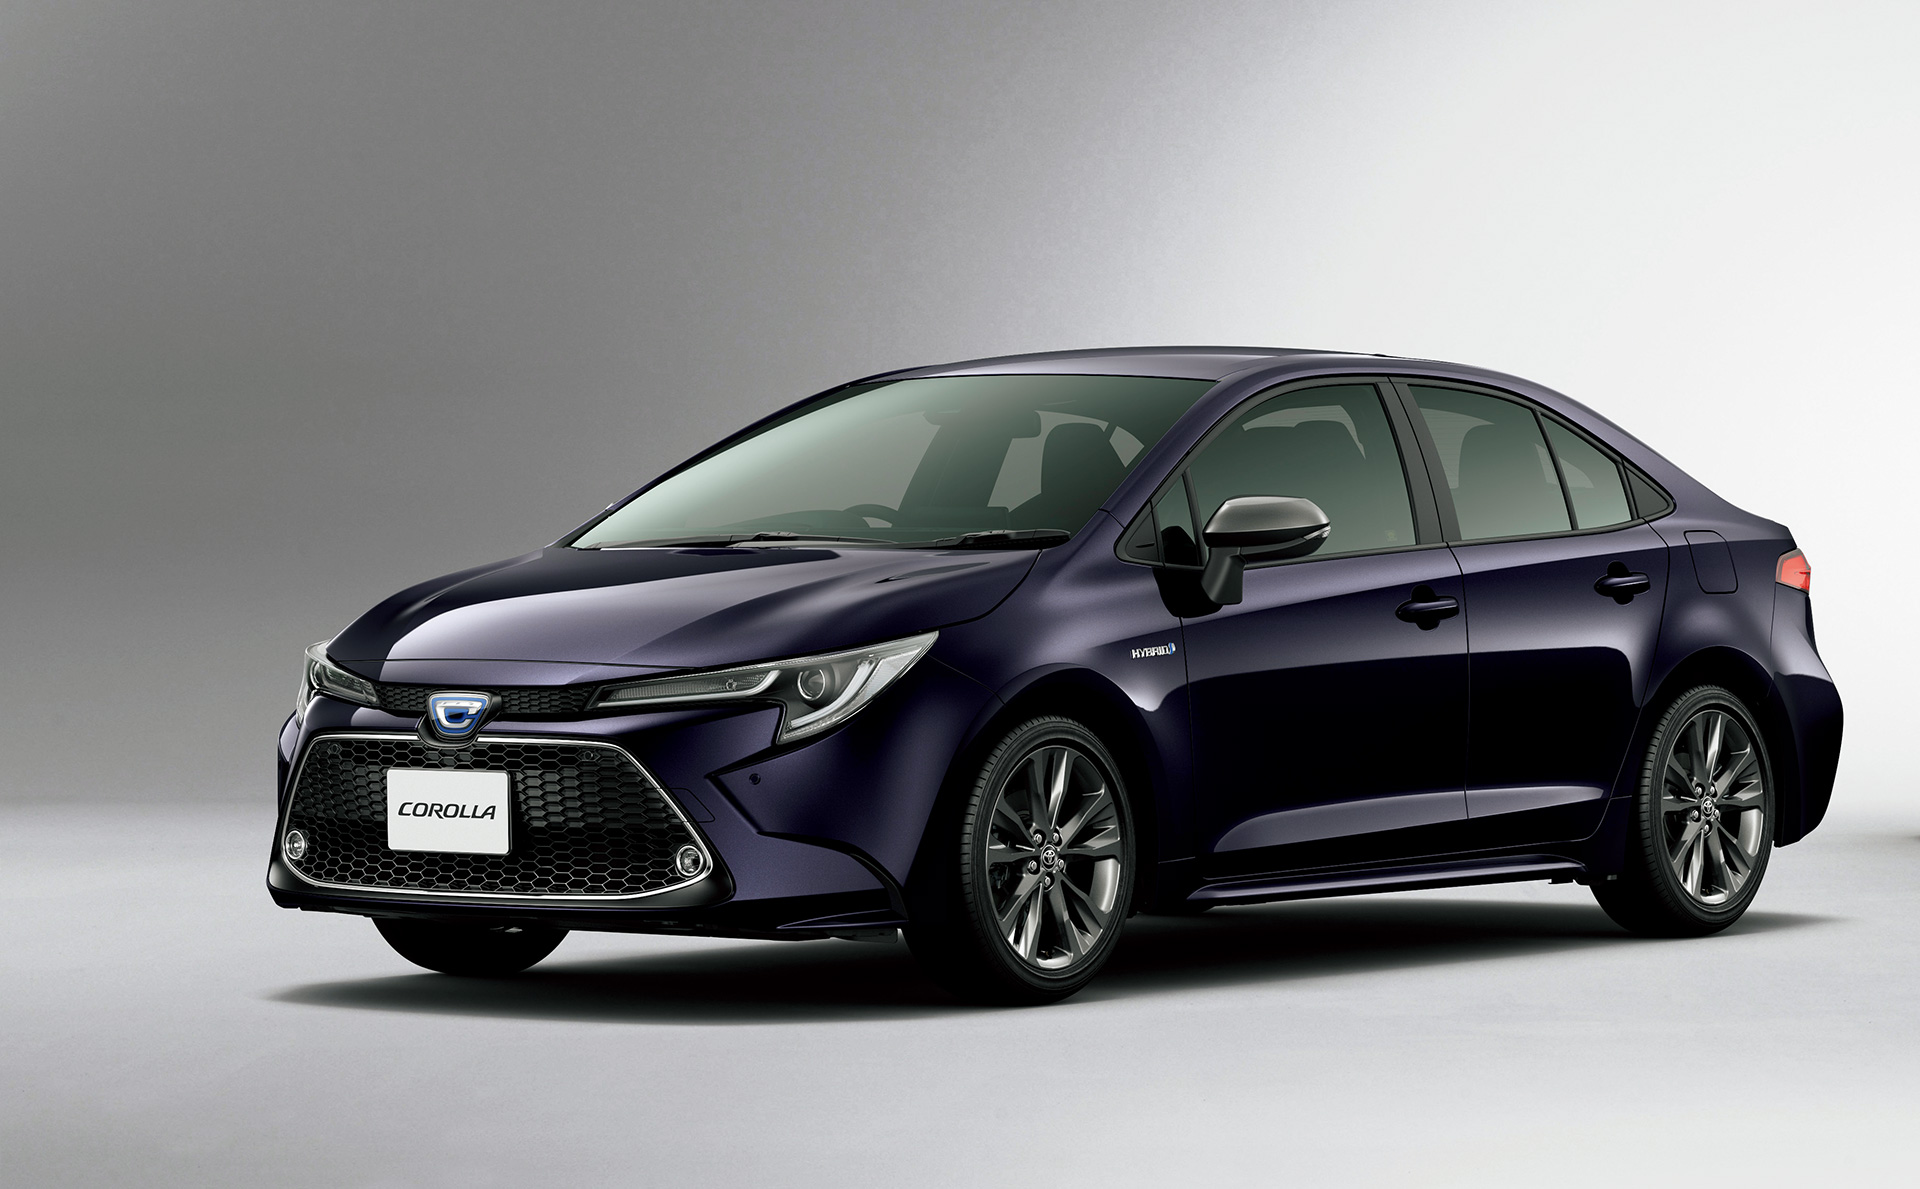 [DIAGRAM_34OR]  Toyota Rolls Out Completely Redesigned Corolla, Corolla Touring, and  Unveils Improvements to the Corolla Sport in Japan | Toyota | Global  Newsroom | Toyota Motor Corporation Official Global Website | Toyota Fielder Pedals |  | global.toyota